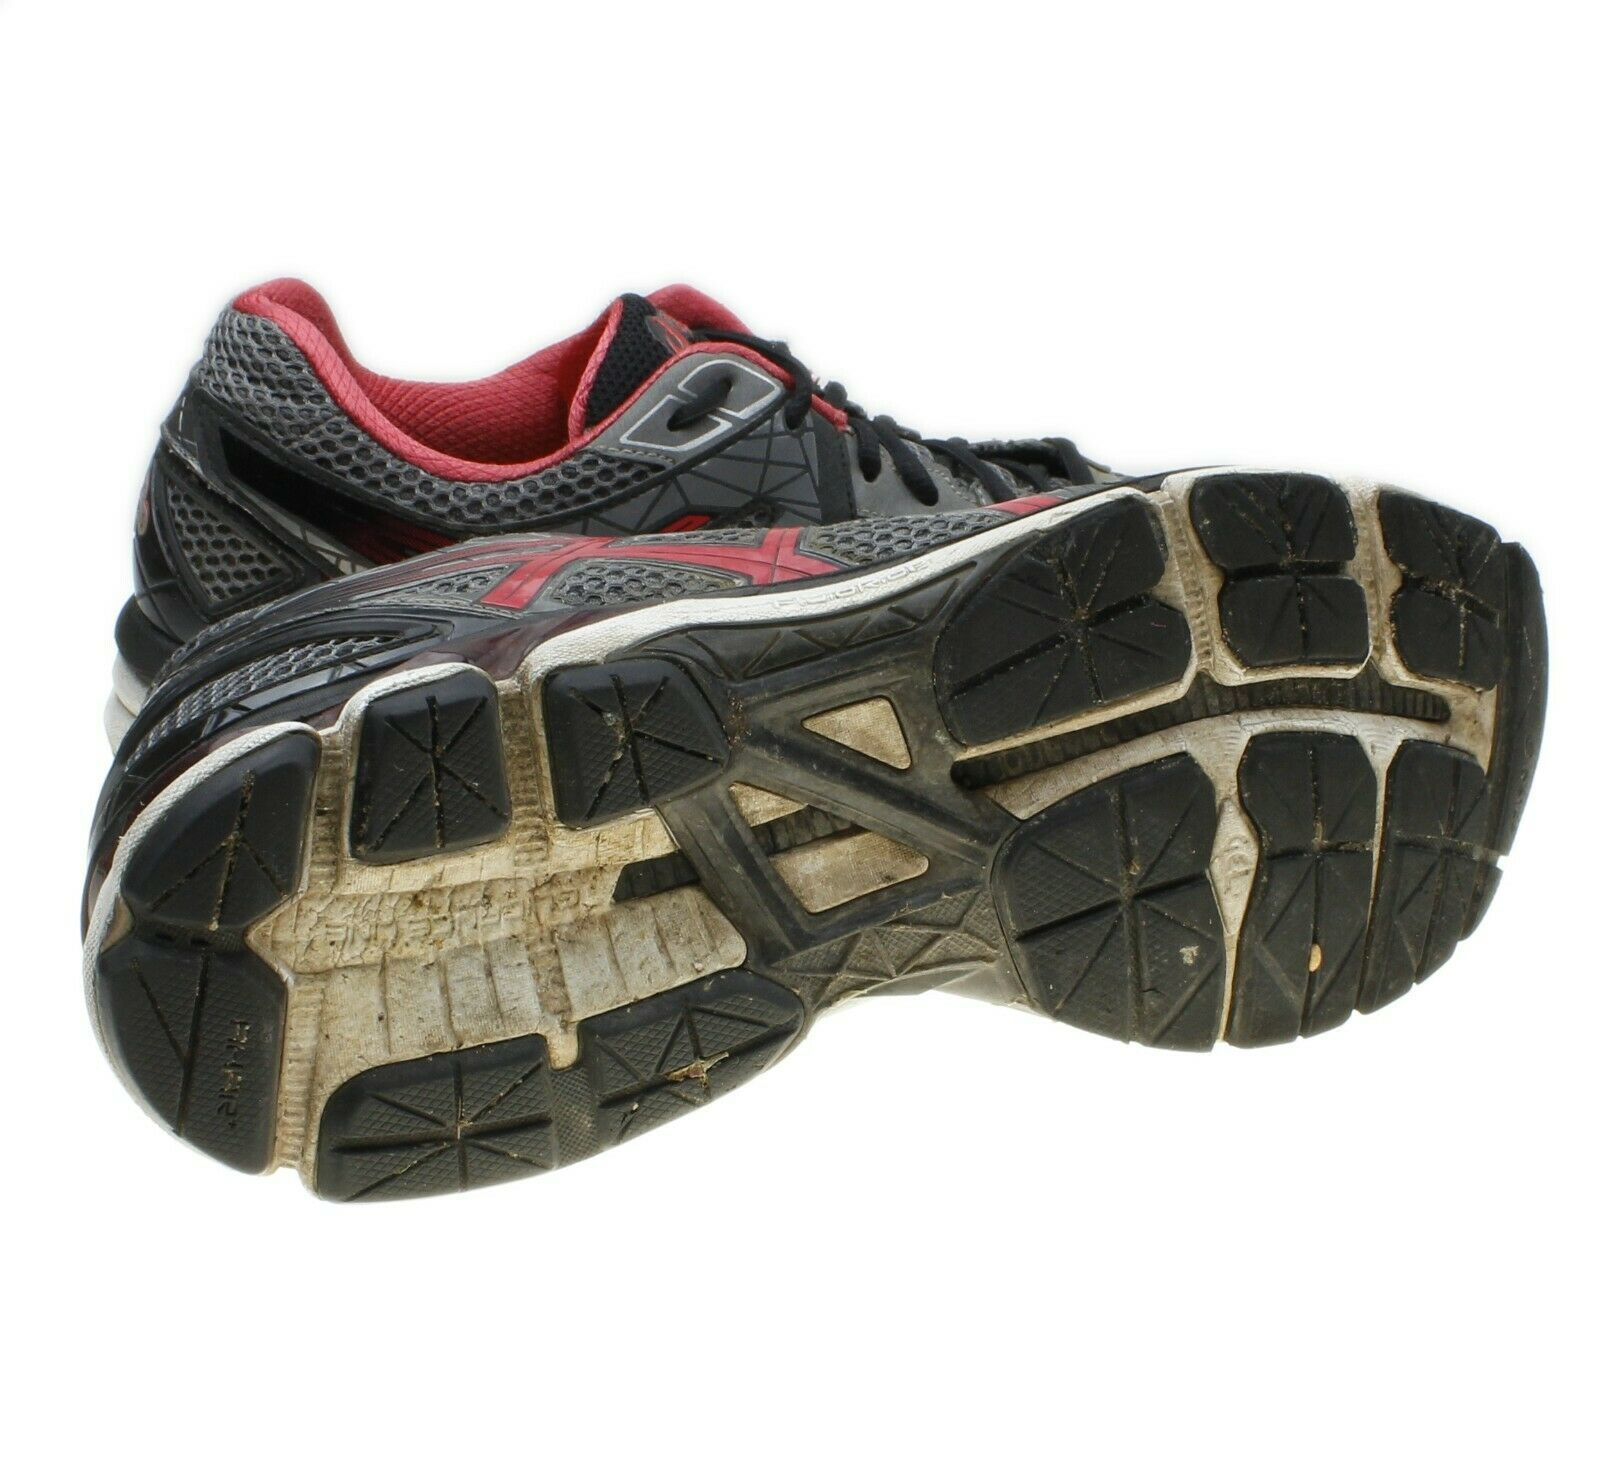 Asics GT 2000 v 3 Gray Mens Size 11.5 EU 46 Running Shoes Sneakers T500N image 11